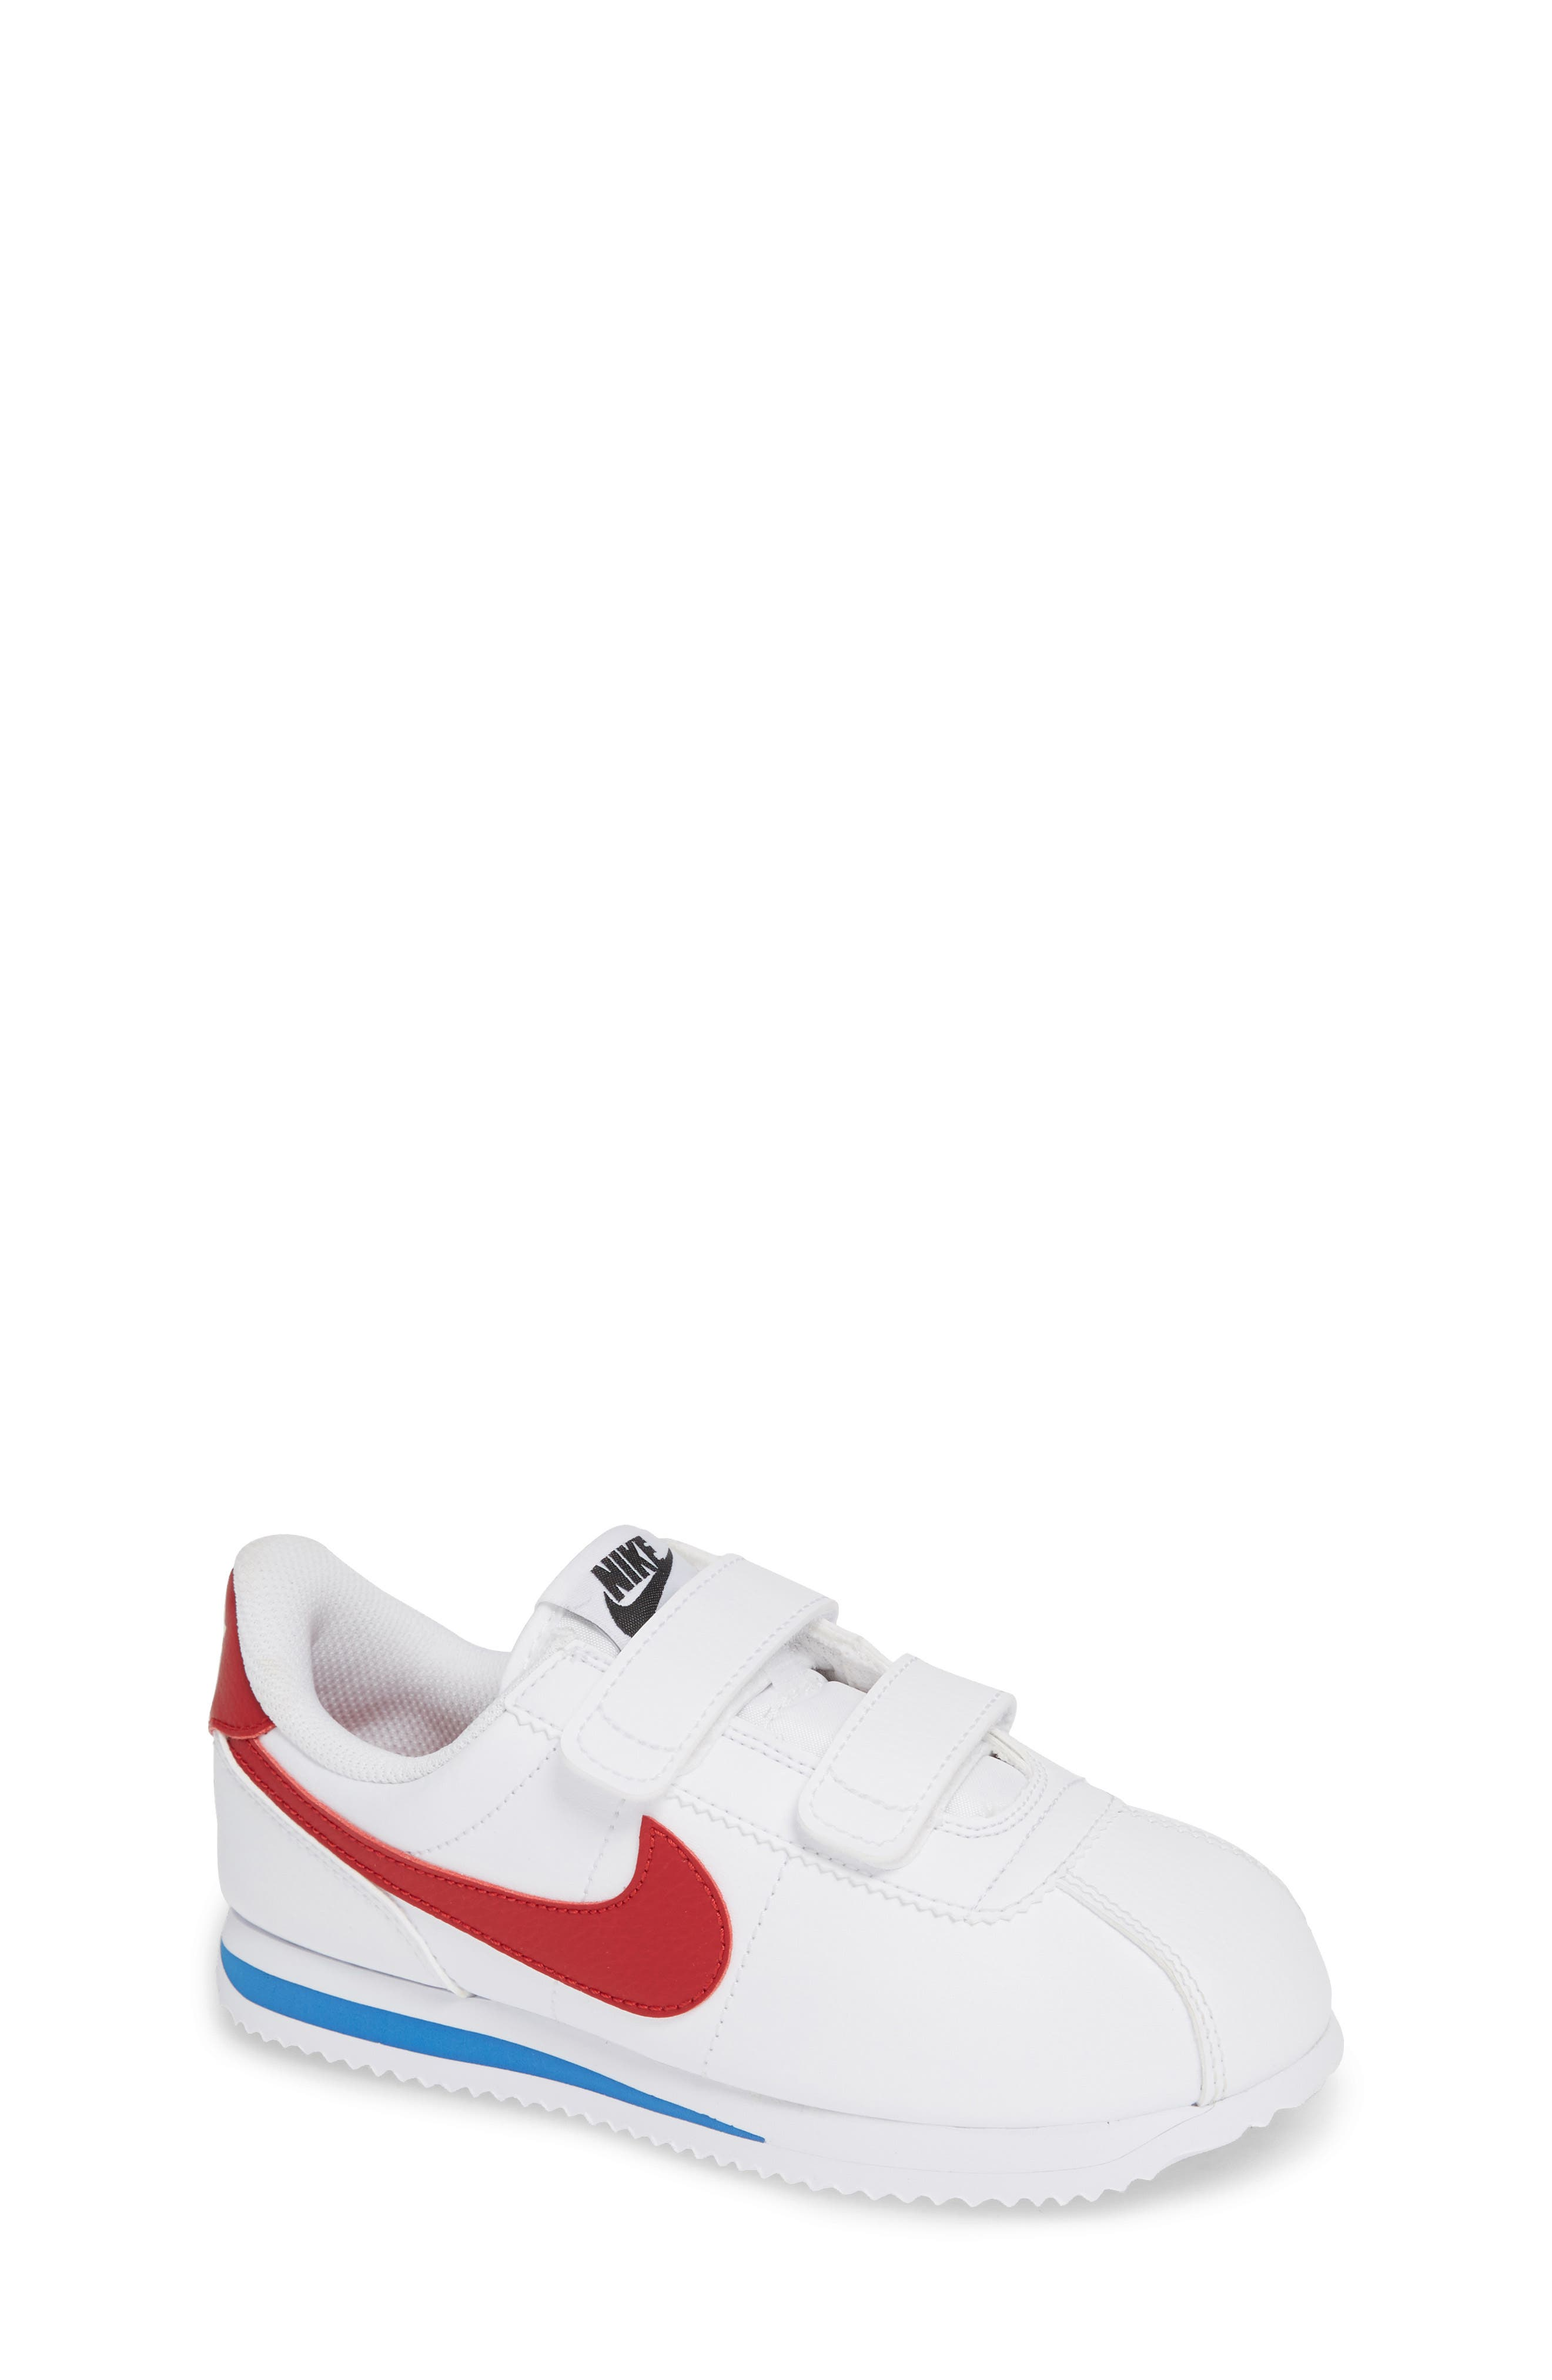 NIKE Cortez Basic SL Sneaker, Main, color, WHITE/ VARSITY RED/ BLACK